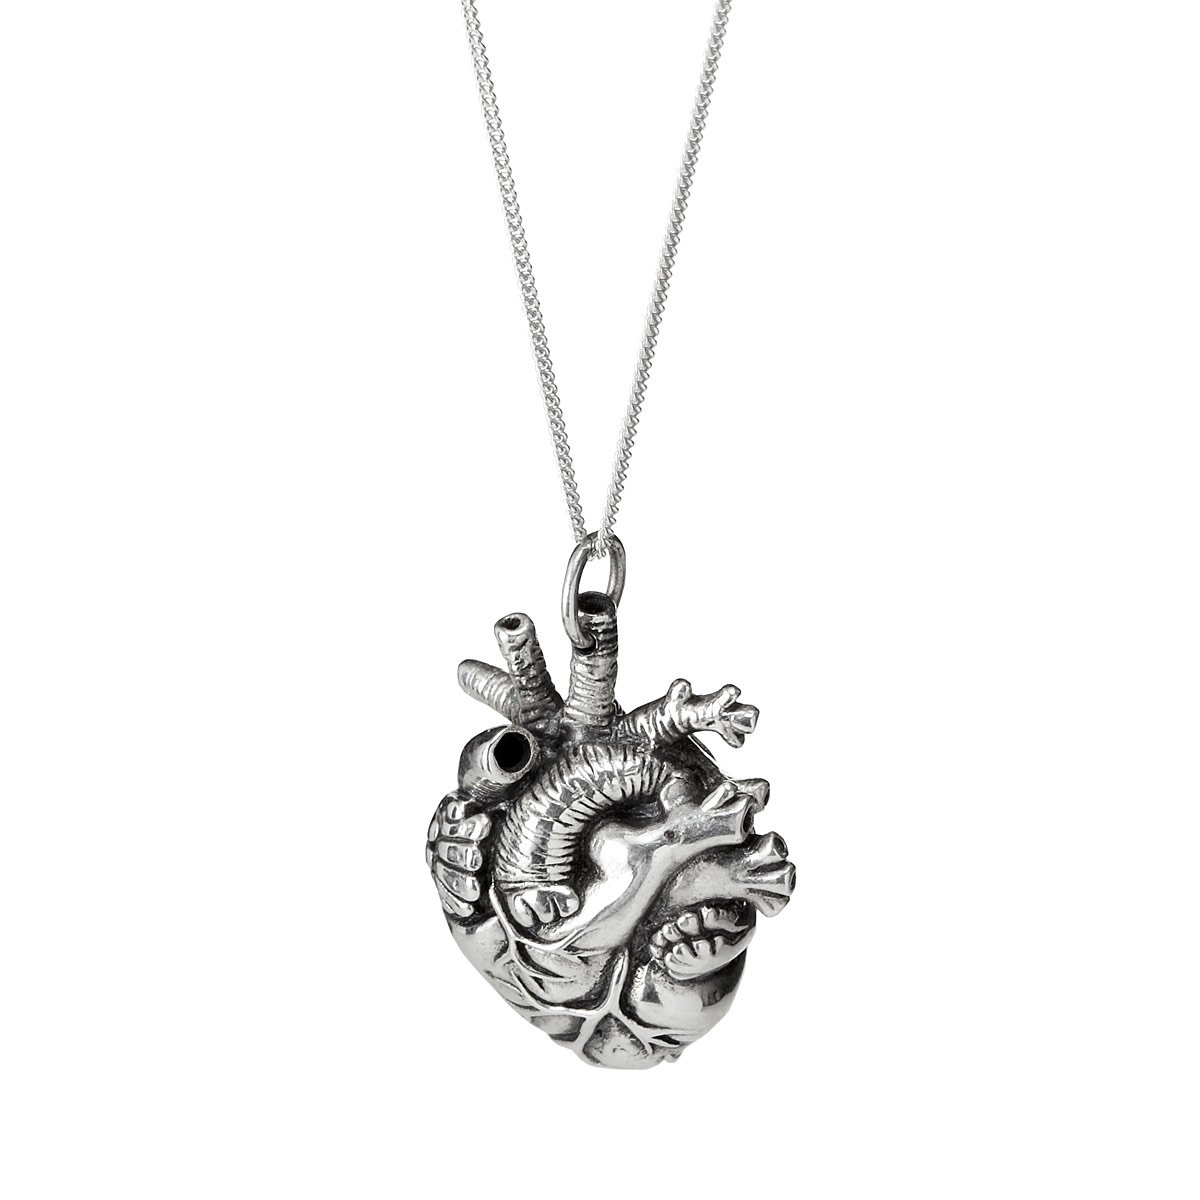 heart of hrts nitro jewellery nk kentucky necklace frankfort